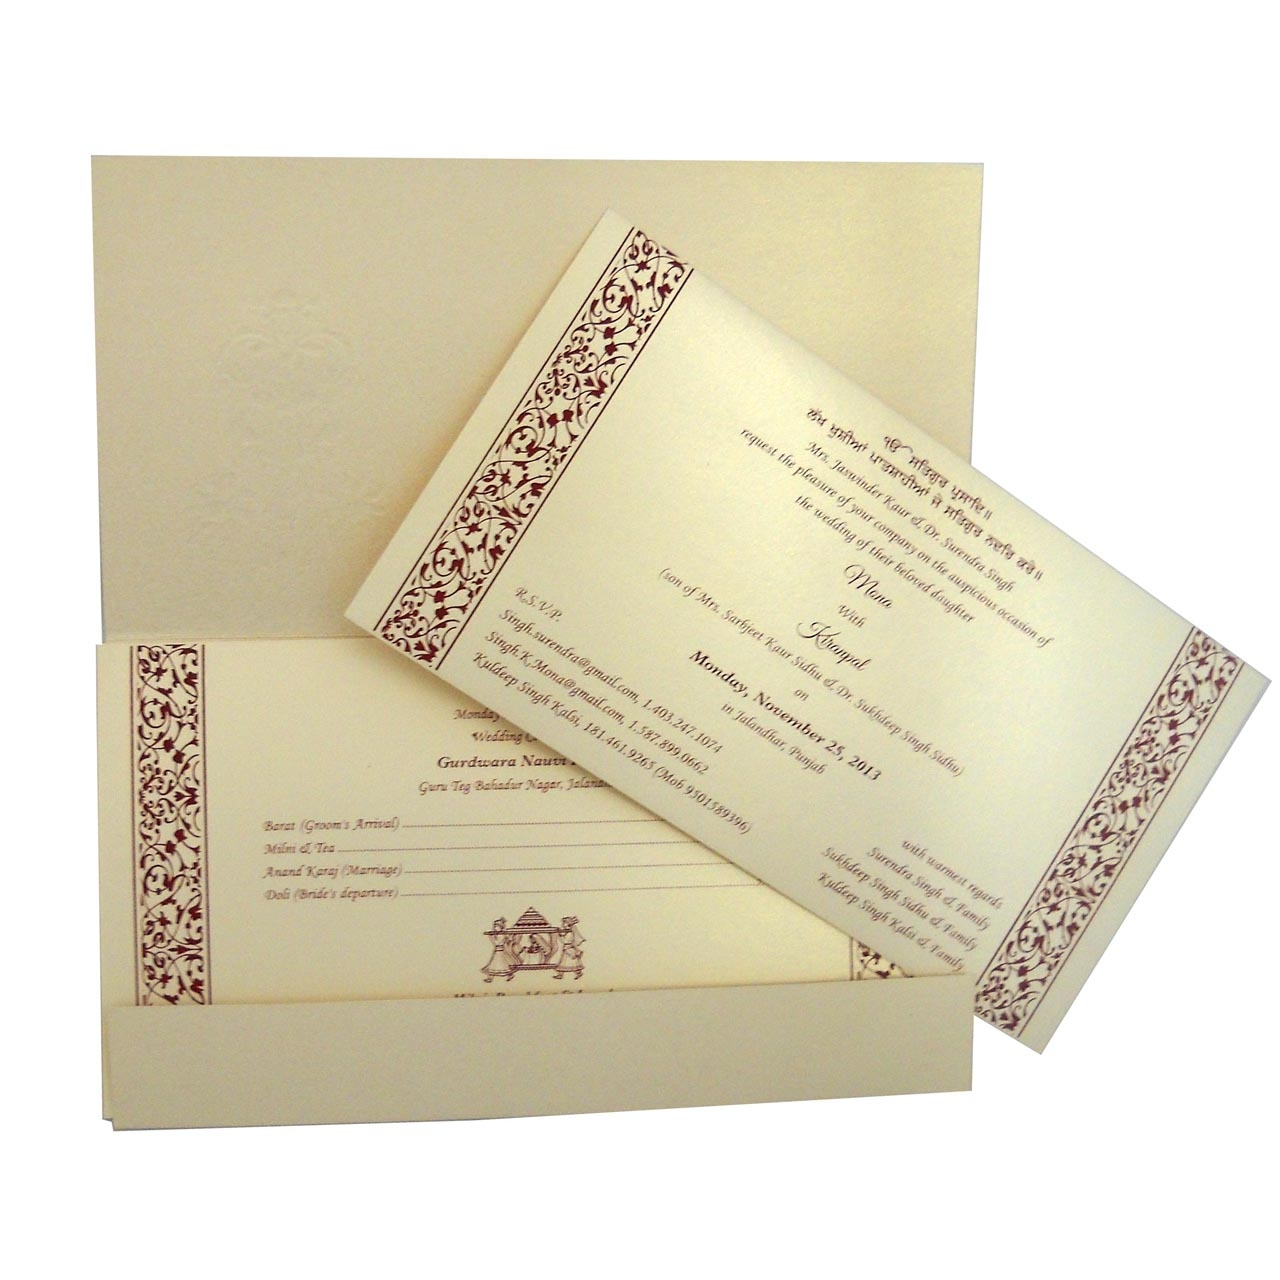 Muslim wedding cards online Archives - The Wedding Cards Online -A ...